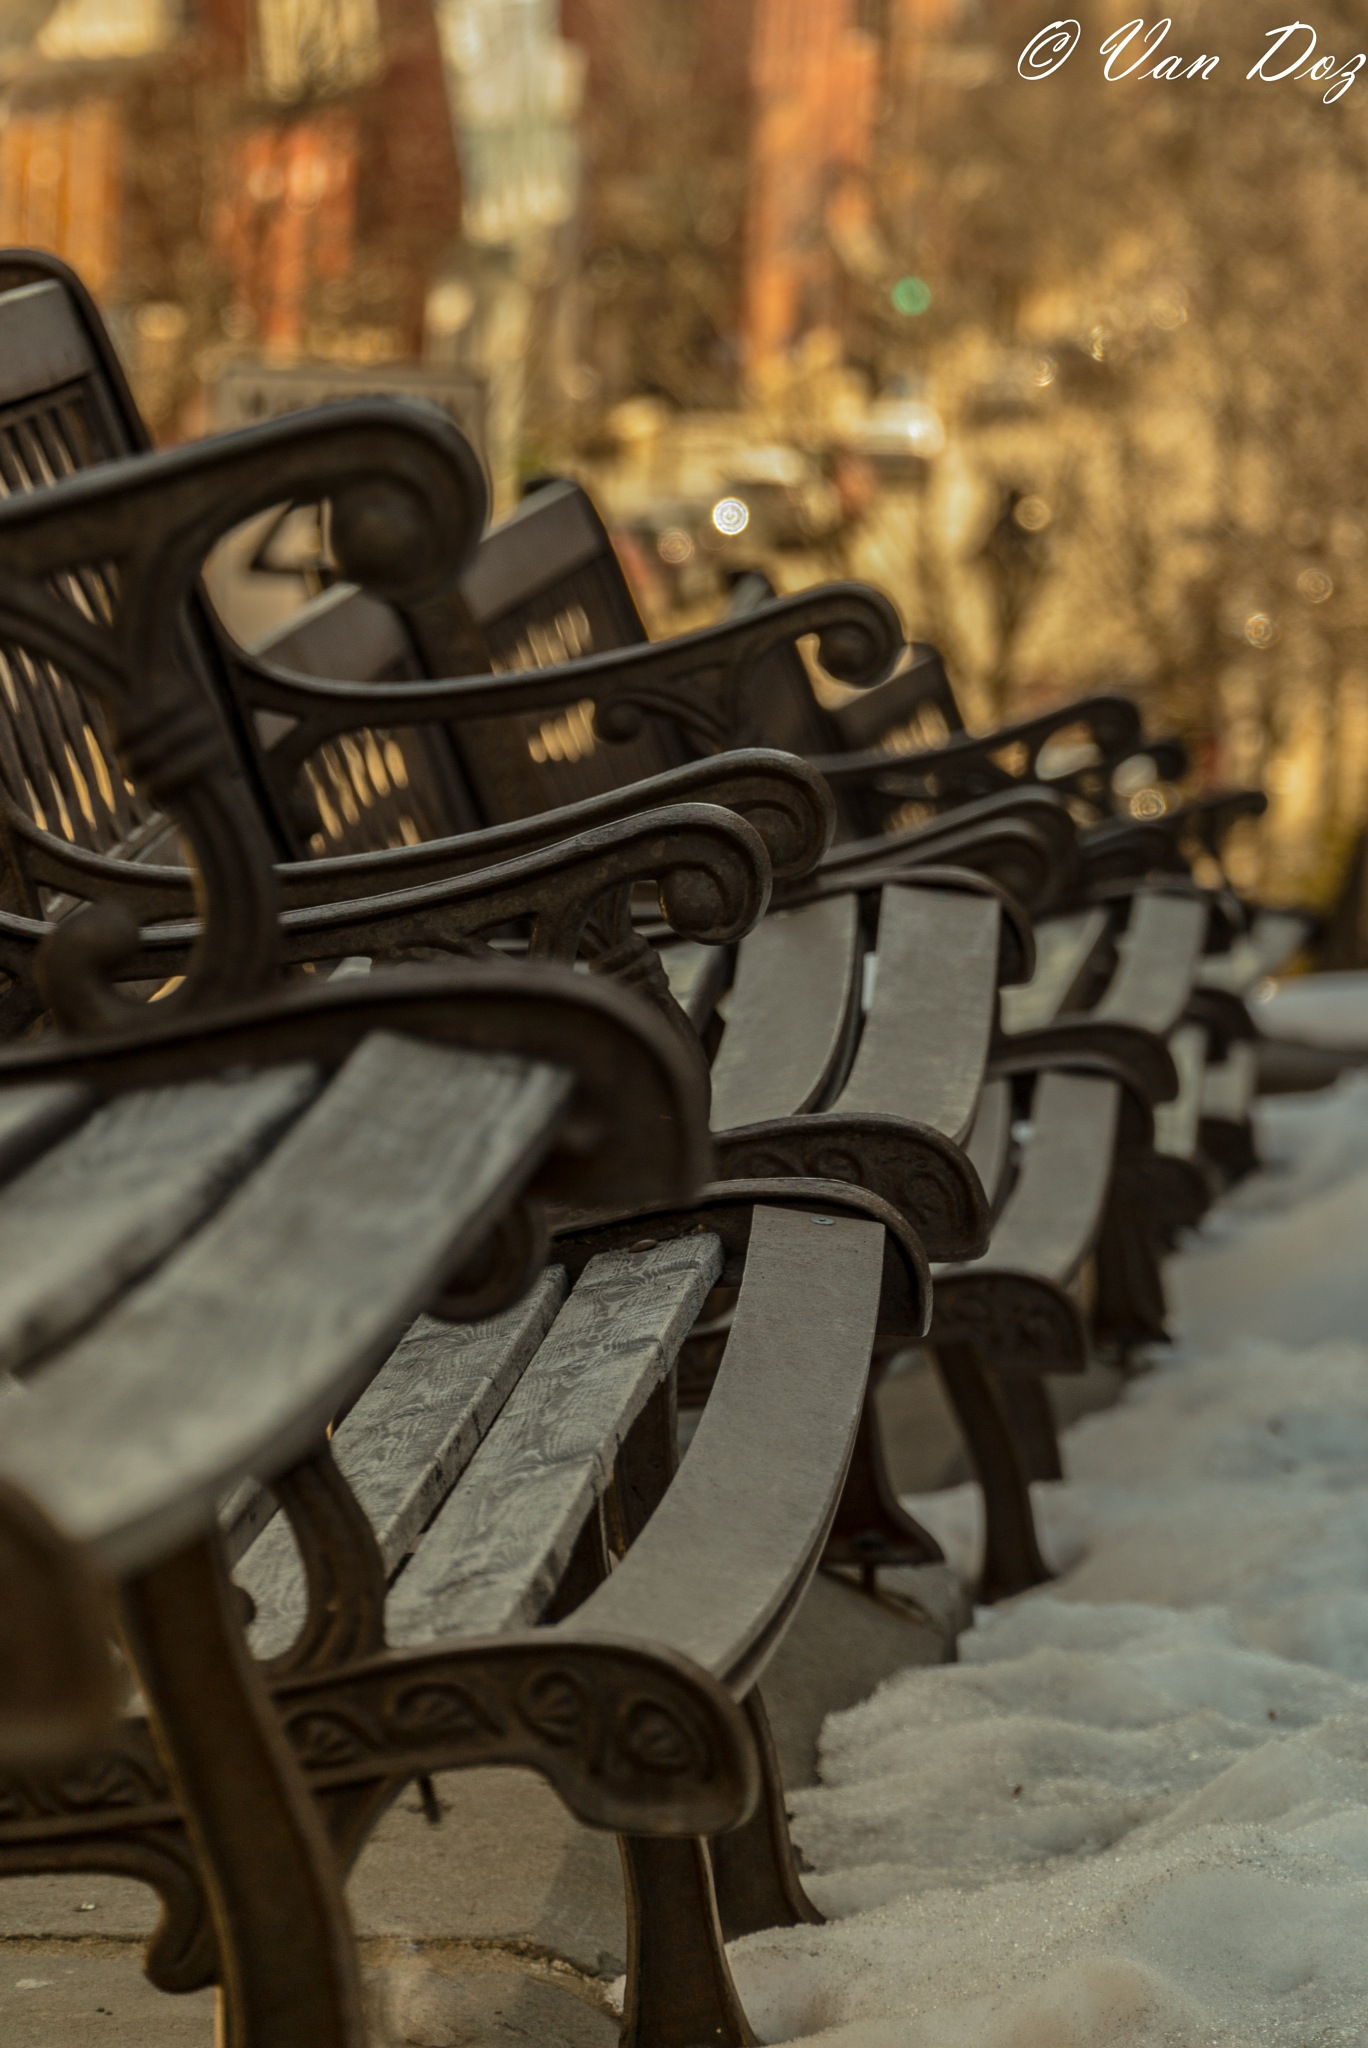 Have a seat by Van Doz